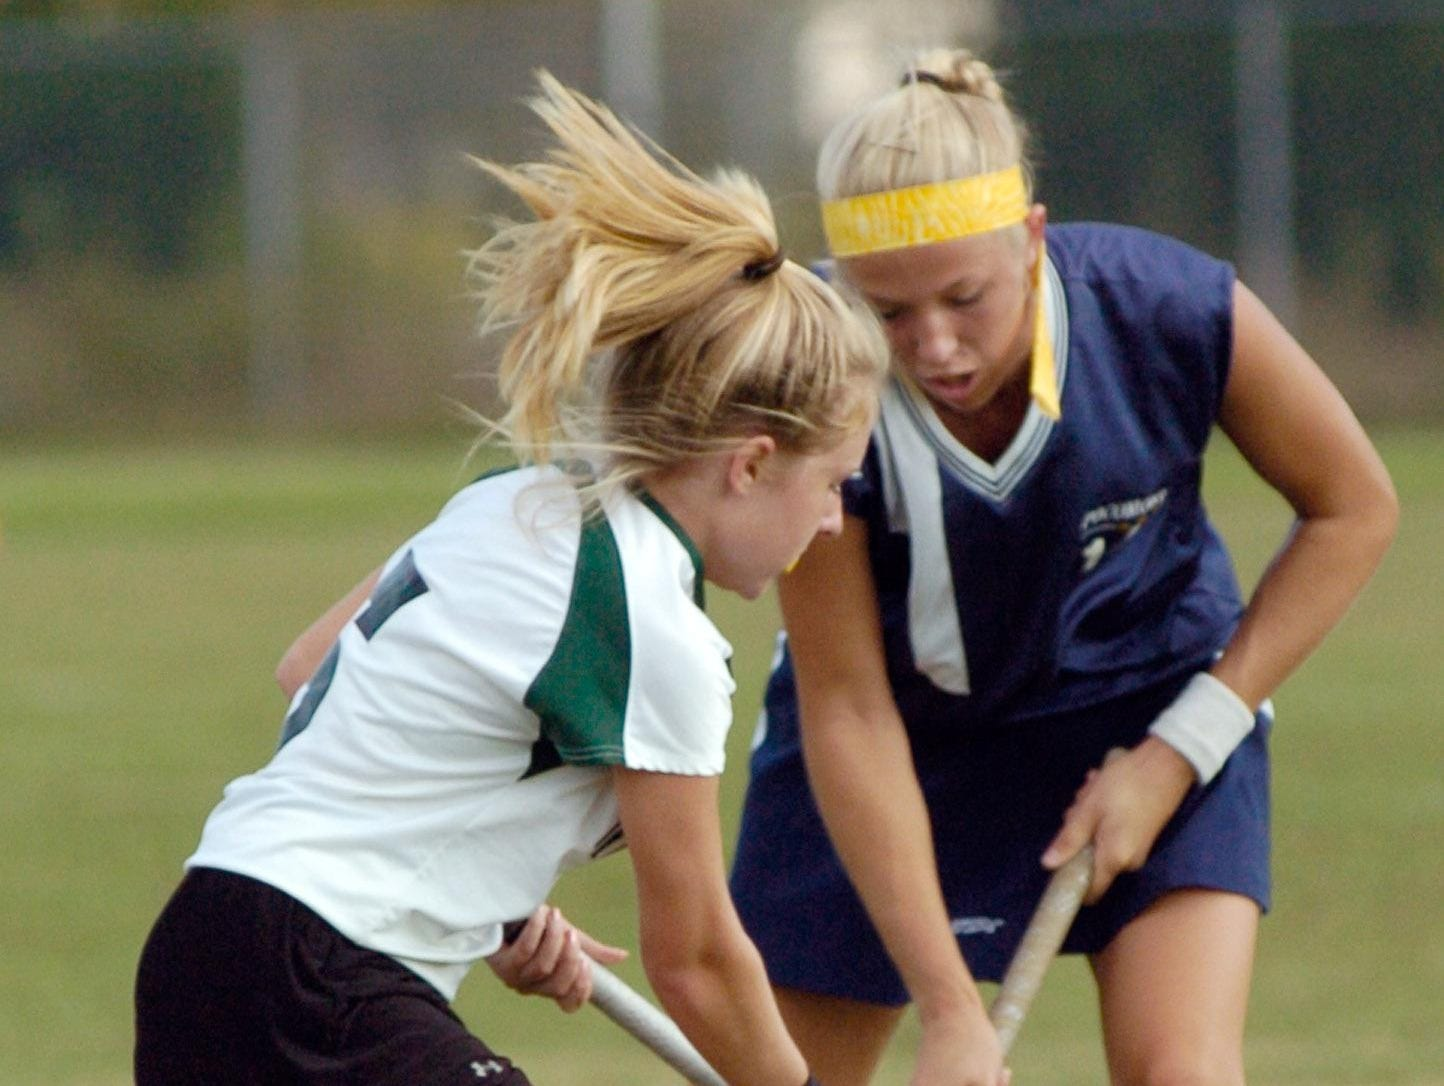 Pocomoke's Brooke Tapman fights for possession with Parkside's Courtney Dennis in this 2006 photo. Tapman said she took the news of former coach Susan Pusey's death hard.